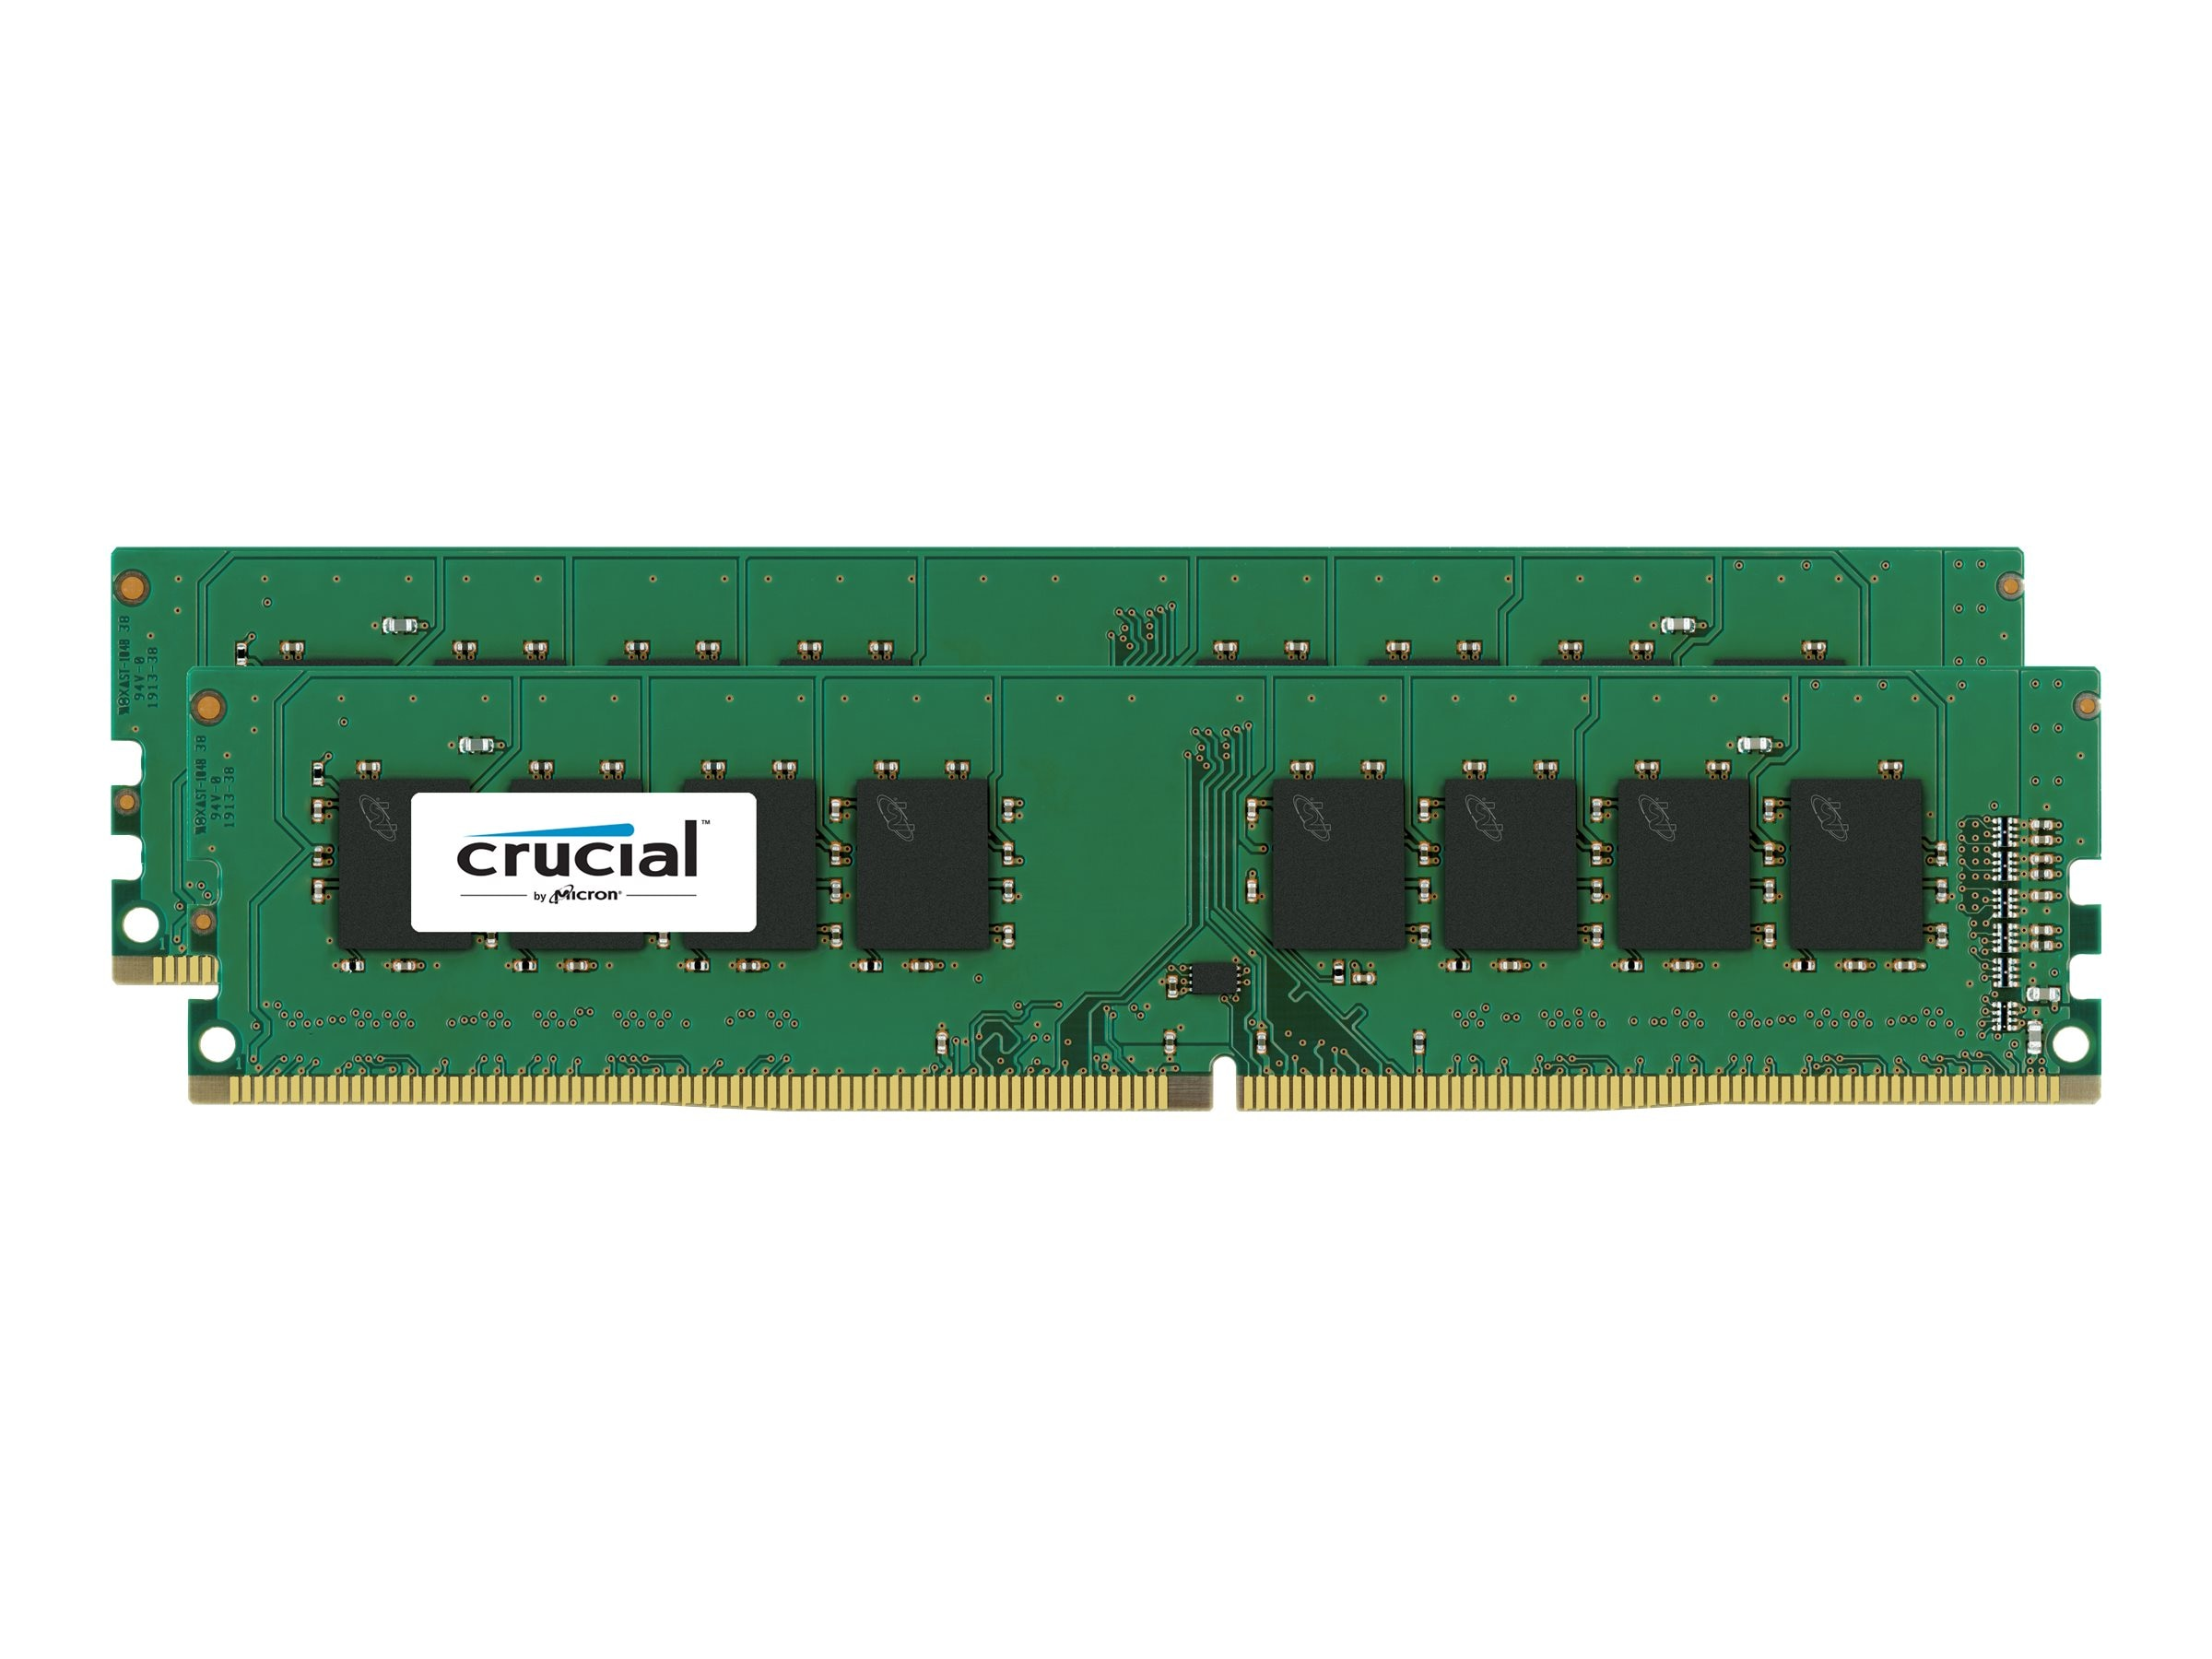 Crucial 8GB PC4-17000 288-pin DDR4 SDRAM DIMM Kit, CT2K4G4DFS8213, 17714270, Memory